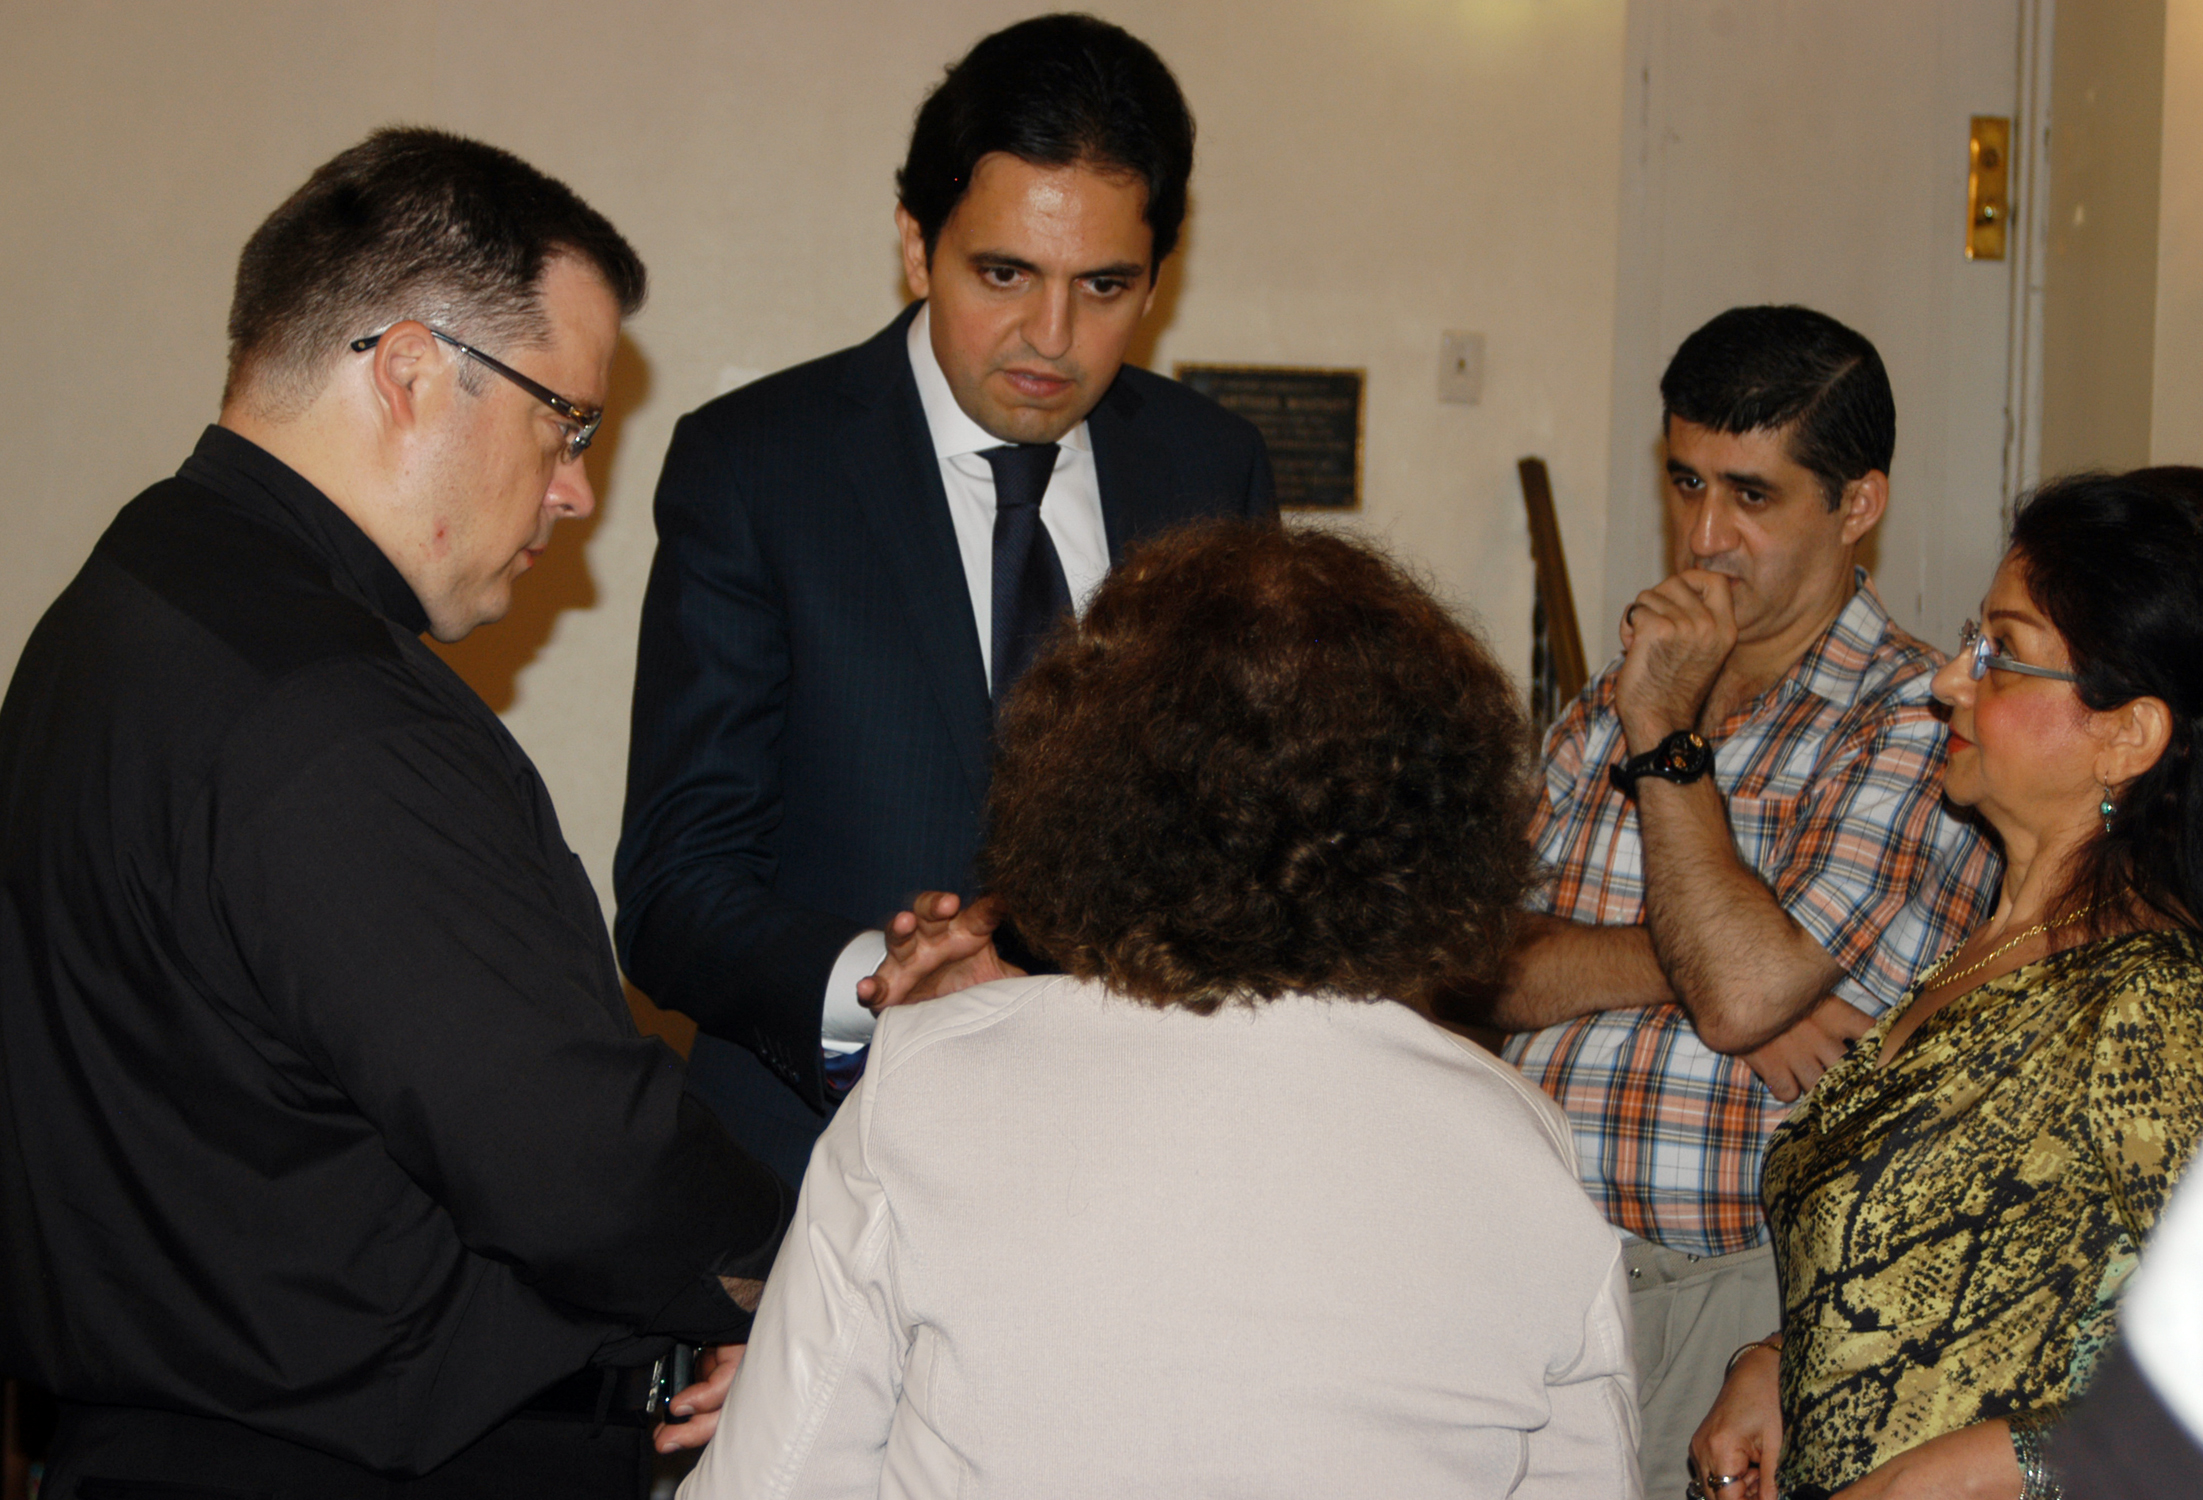 Majdi Ramadan, Consul General Of Lebanon, Met With Parishioners After Attending Mass At Our Lady